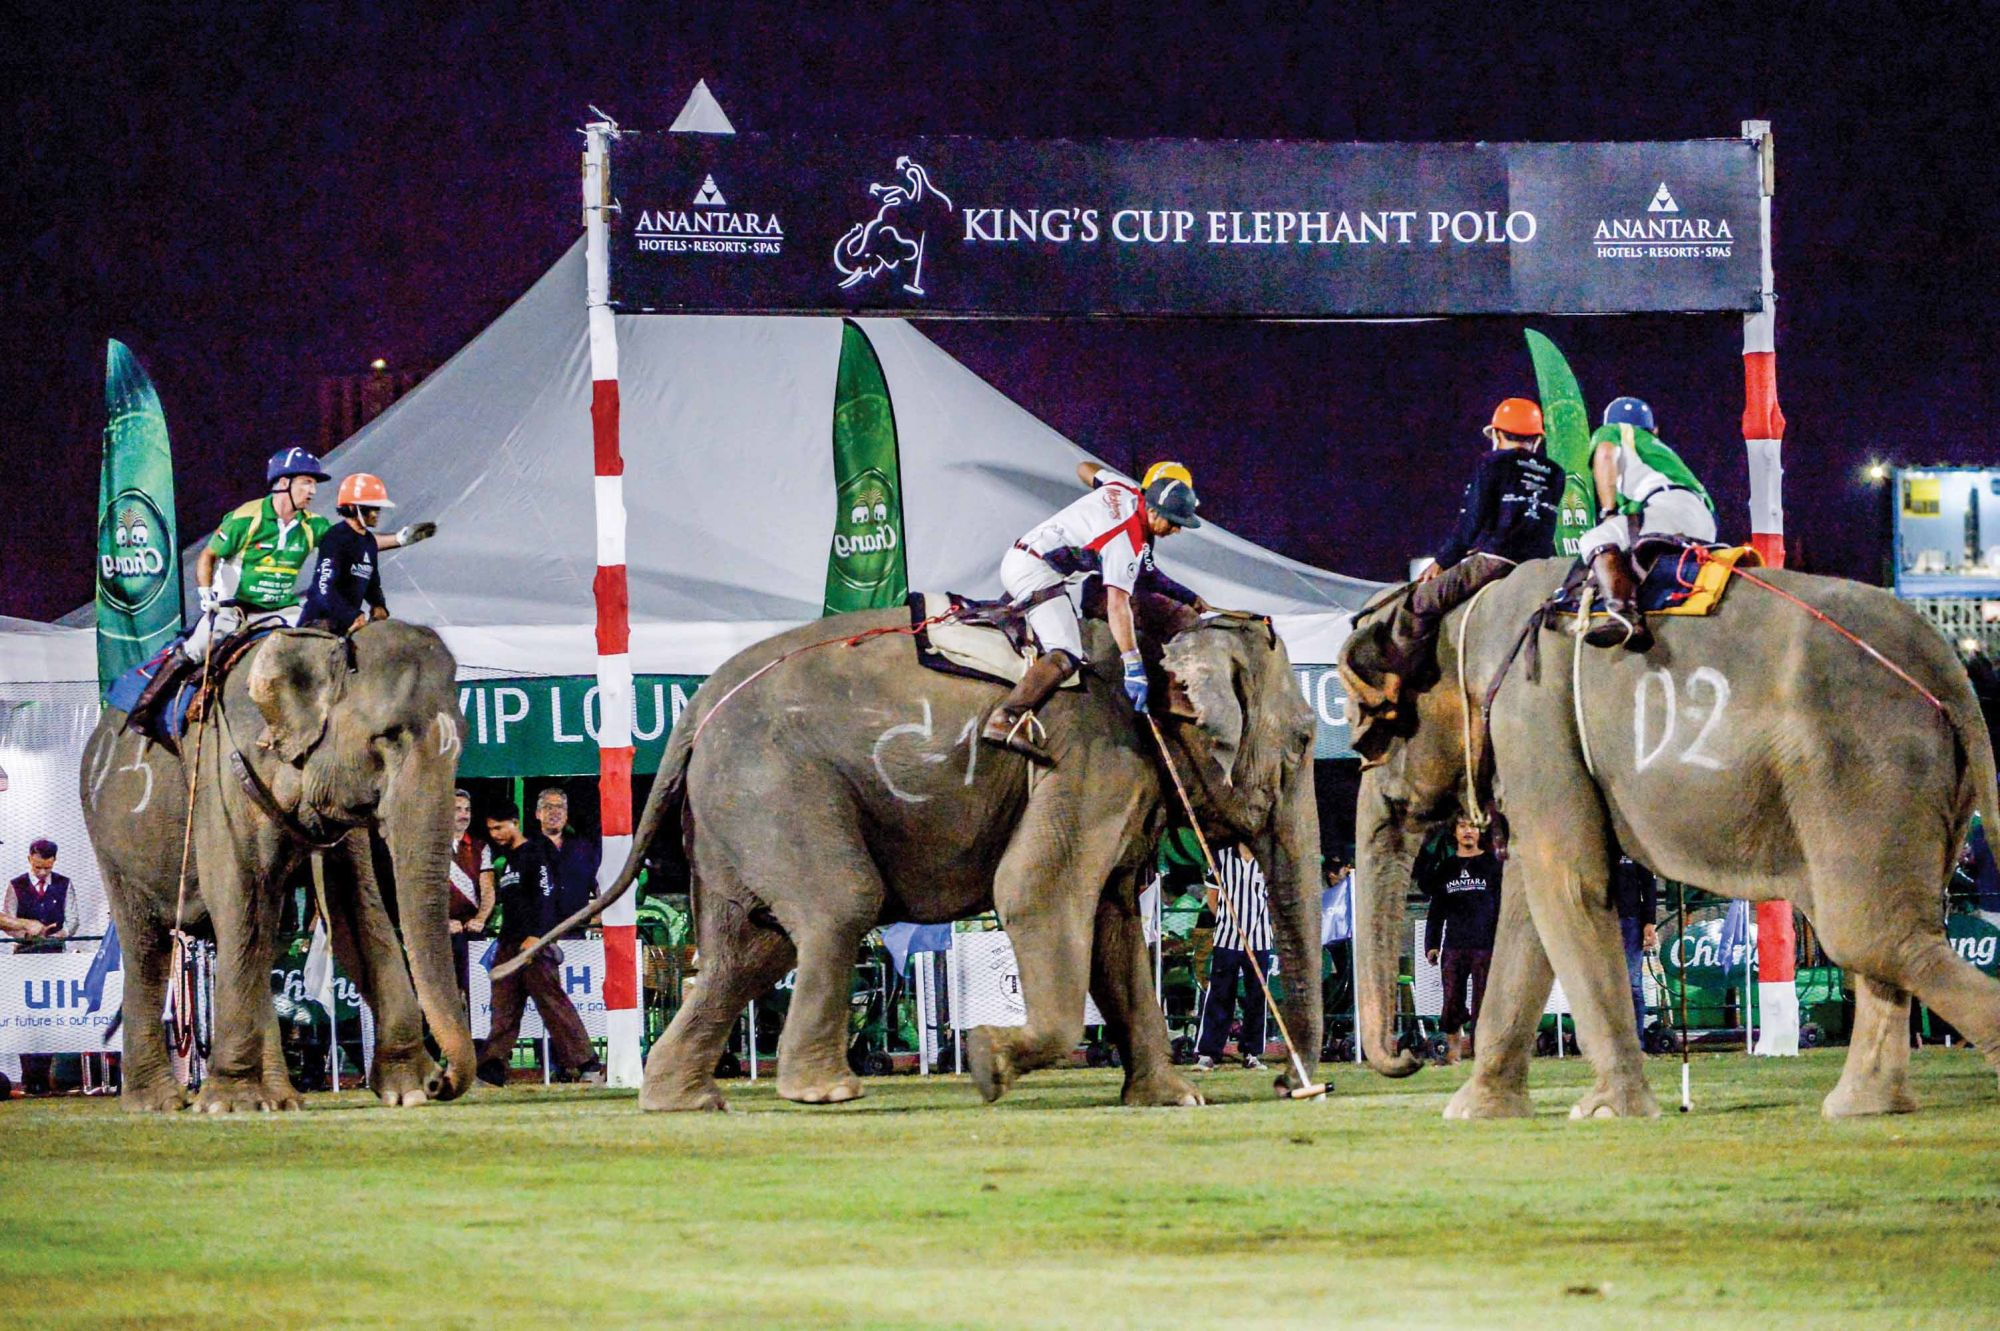 What Happens At An Elephant Polo Tournament